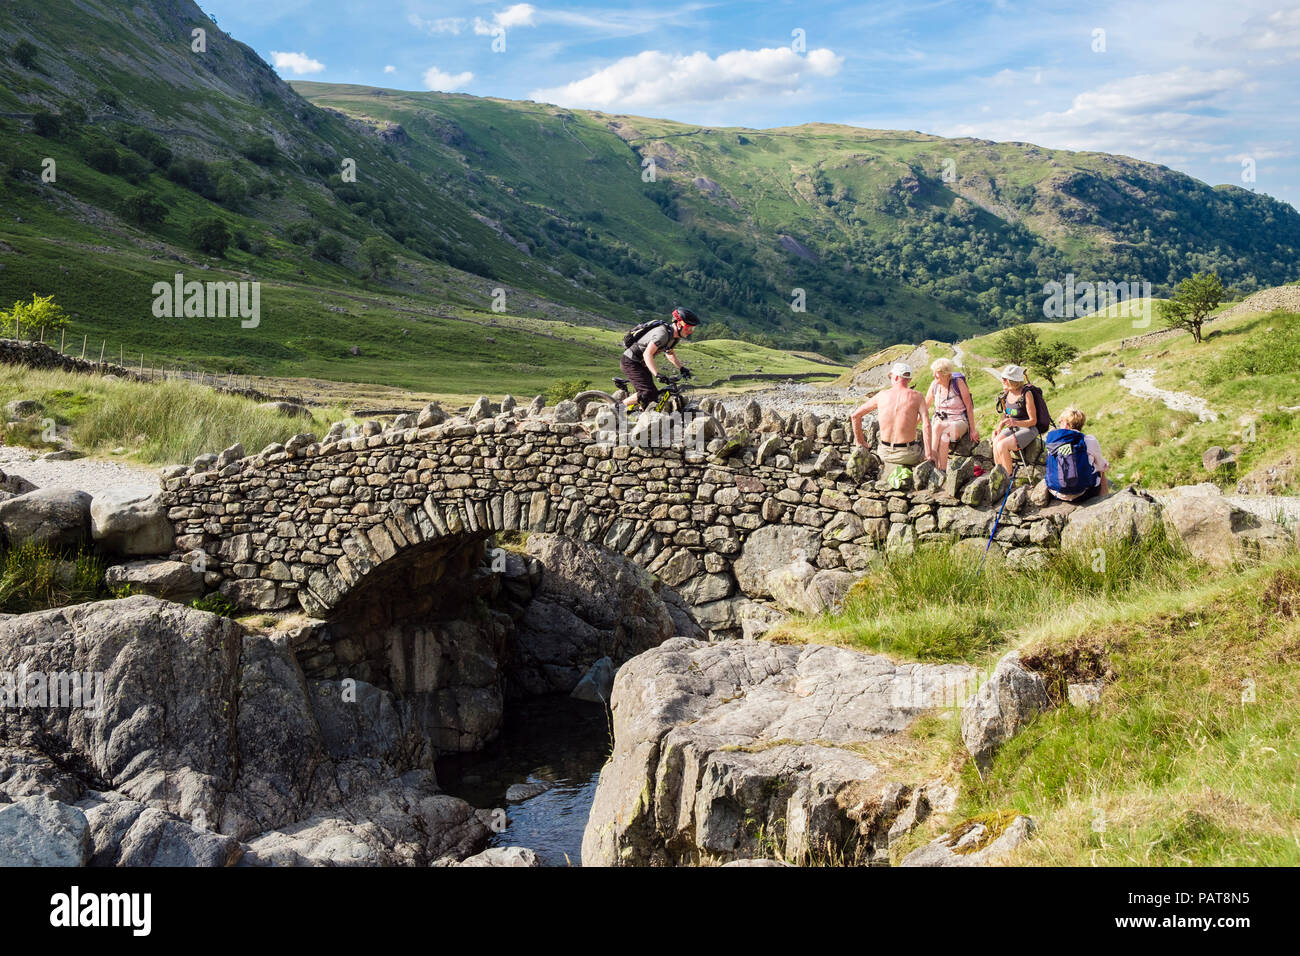 Biker überfahrt Stockley Brücke mit Wanderer ruht auf Wand in Lake District National Park. Seathwaite Borrowdale Cumbria England Großbritannien Großbritannien Stockbild